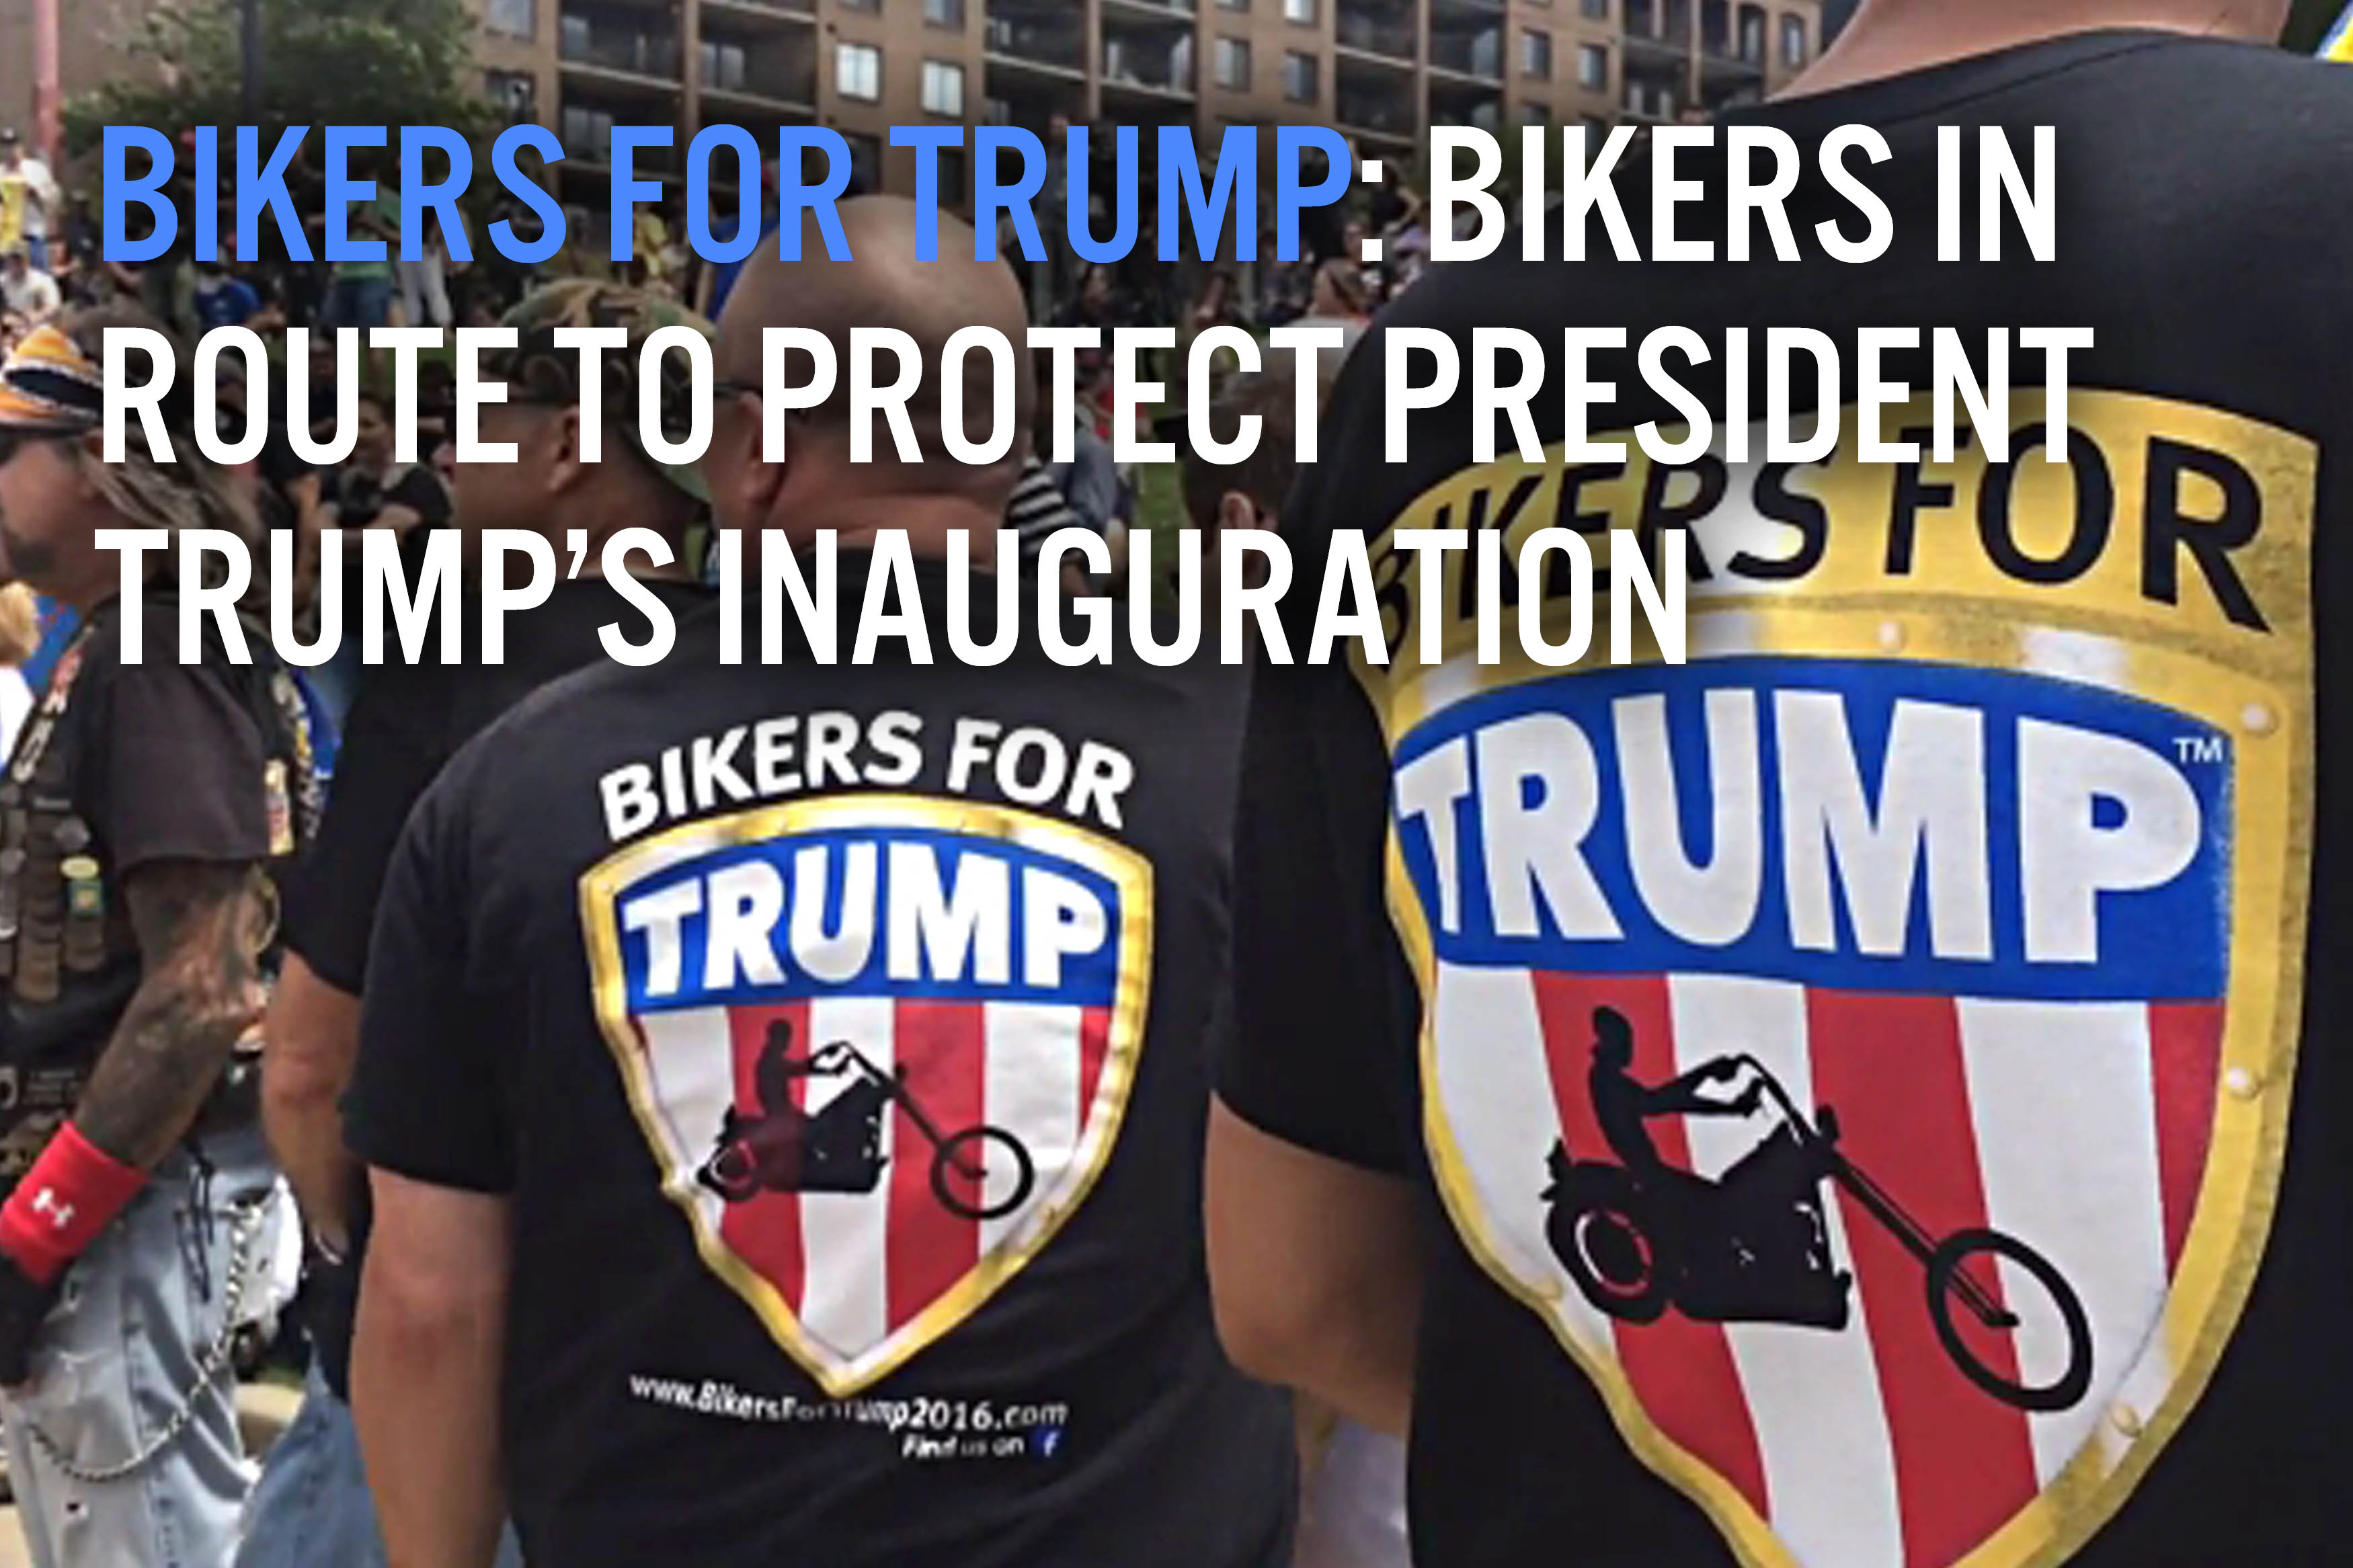 Bikers For Trump